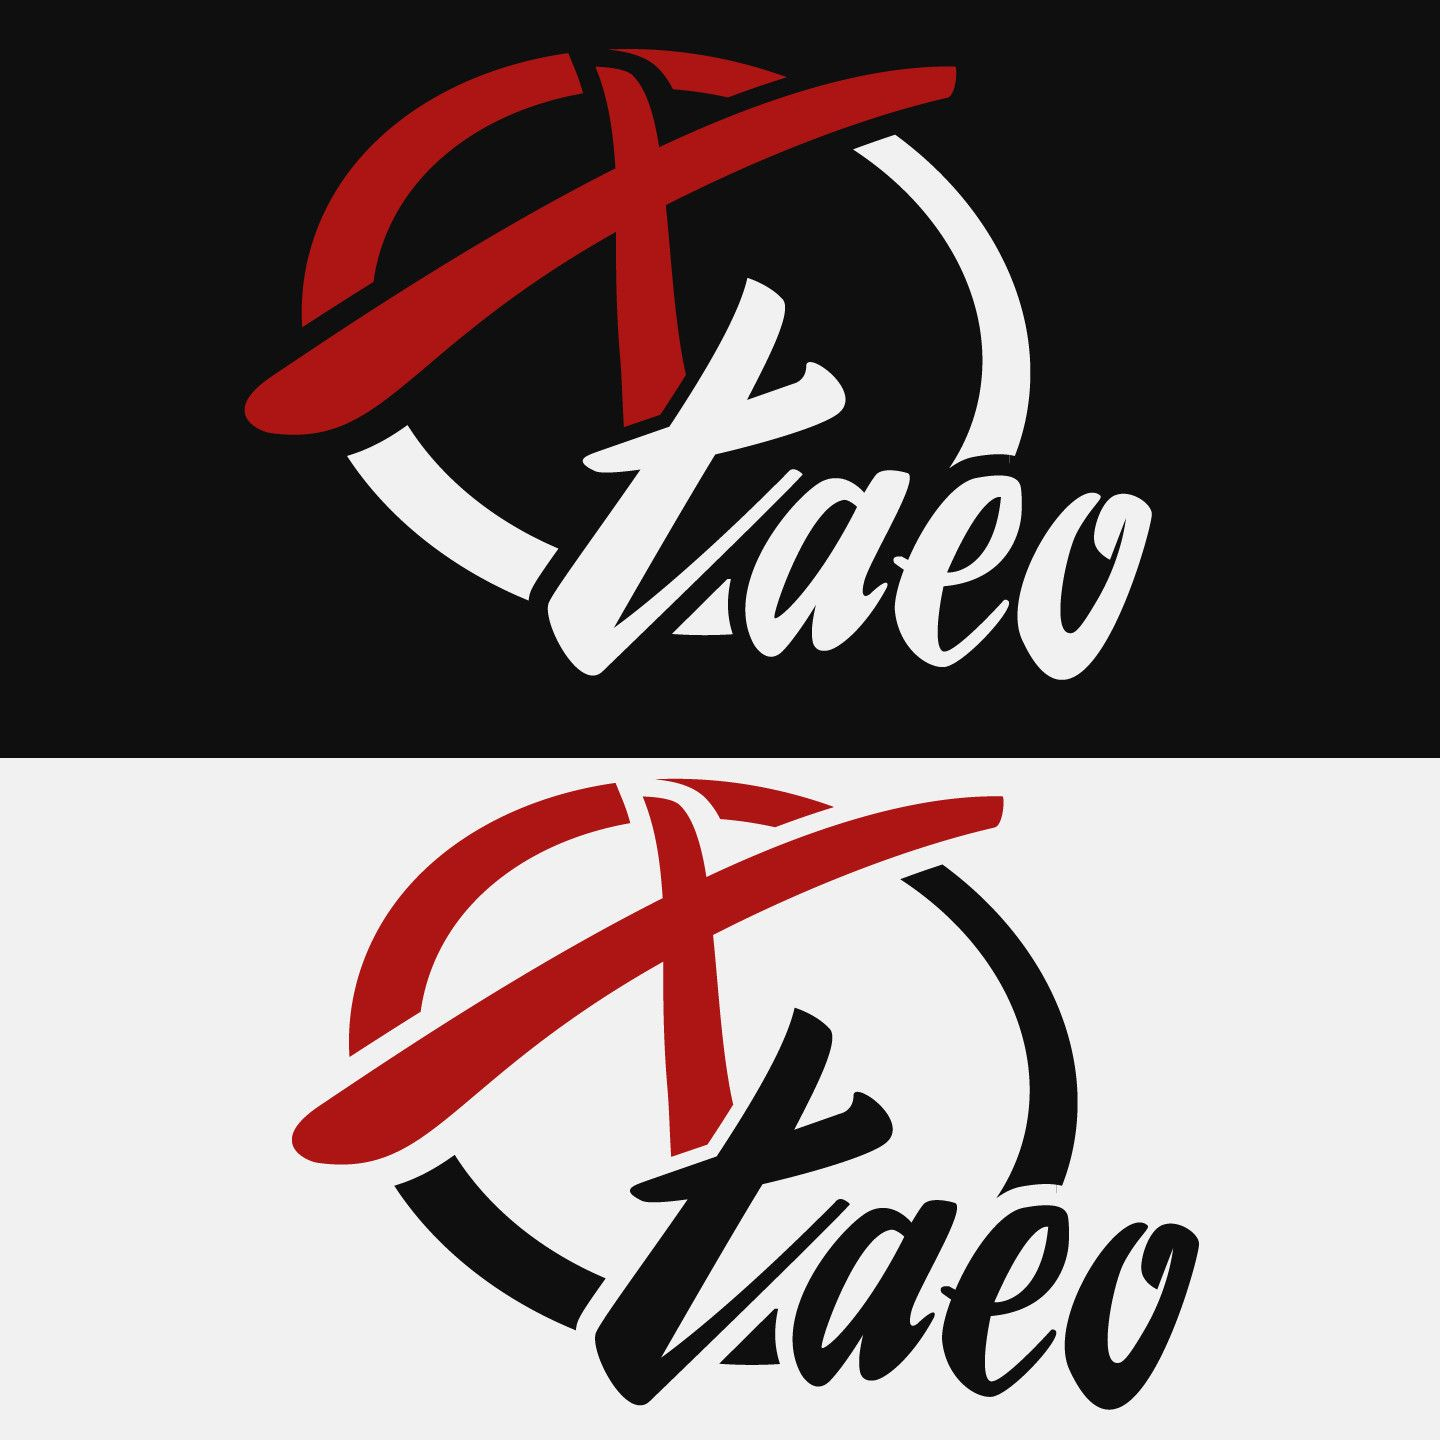 ArtStation Logo Design for Xtaeo Twitch Streamer